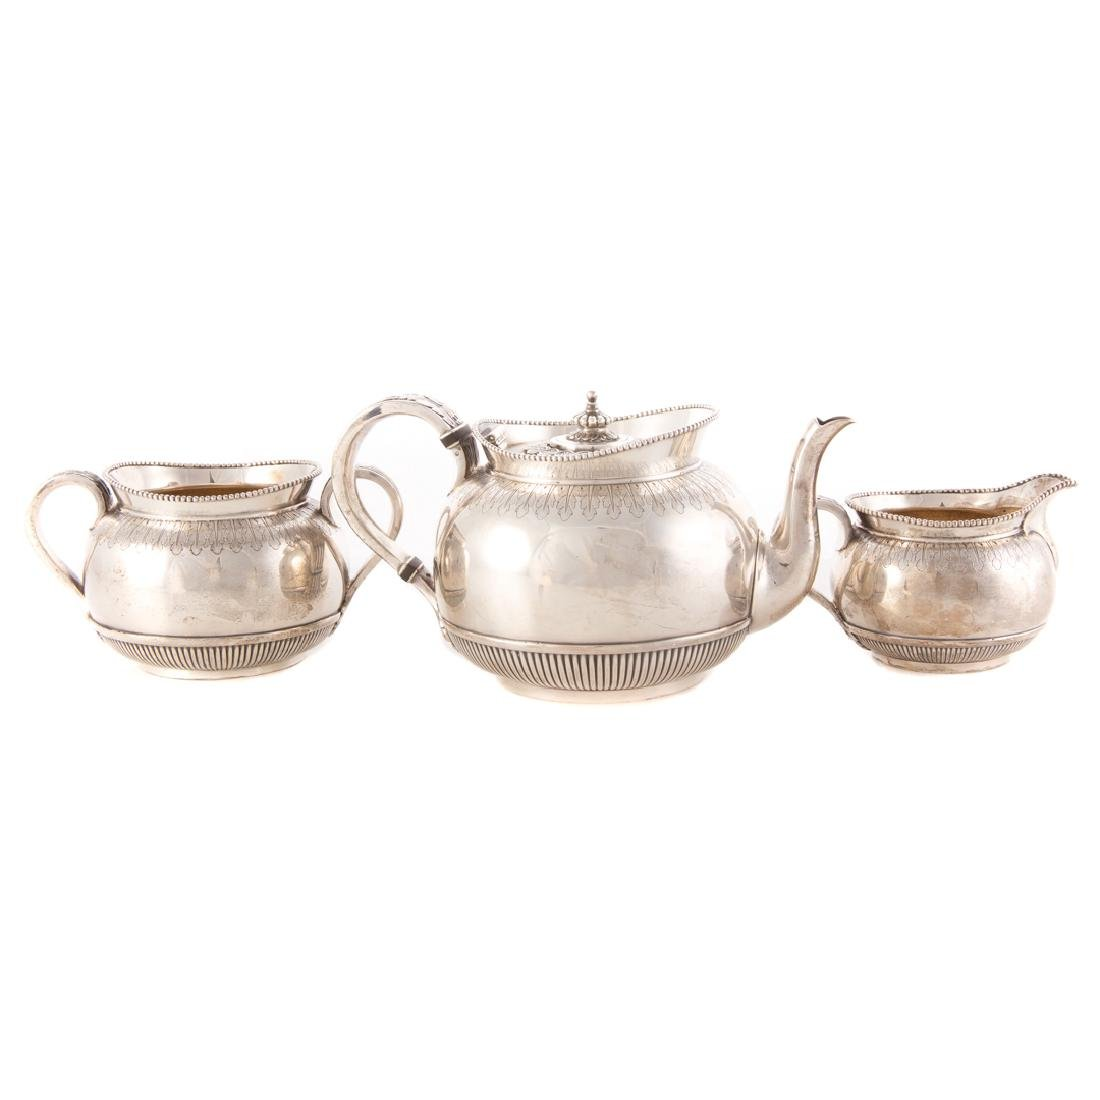 Victorian sterling 3-pc individual tea set